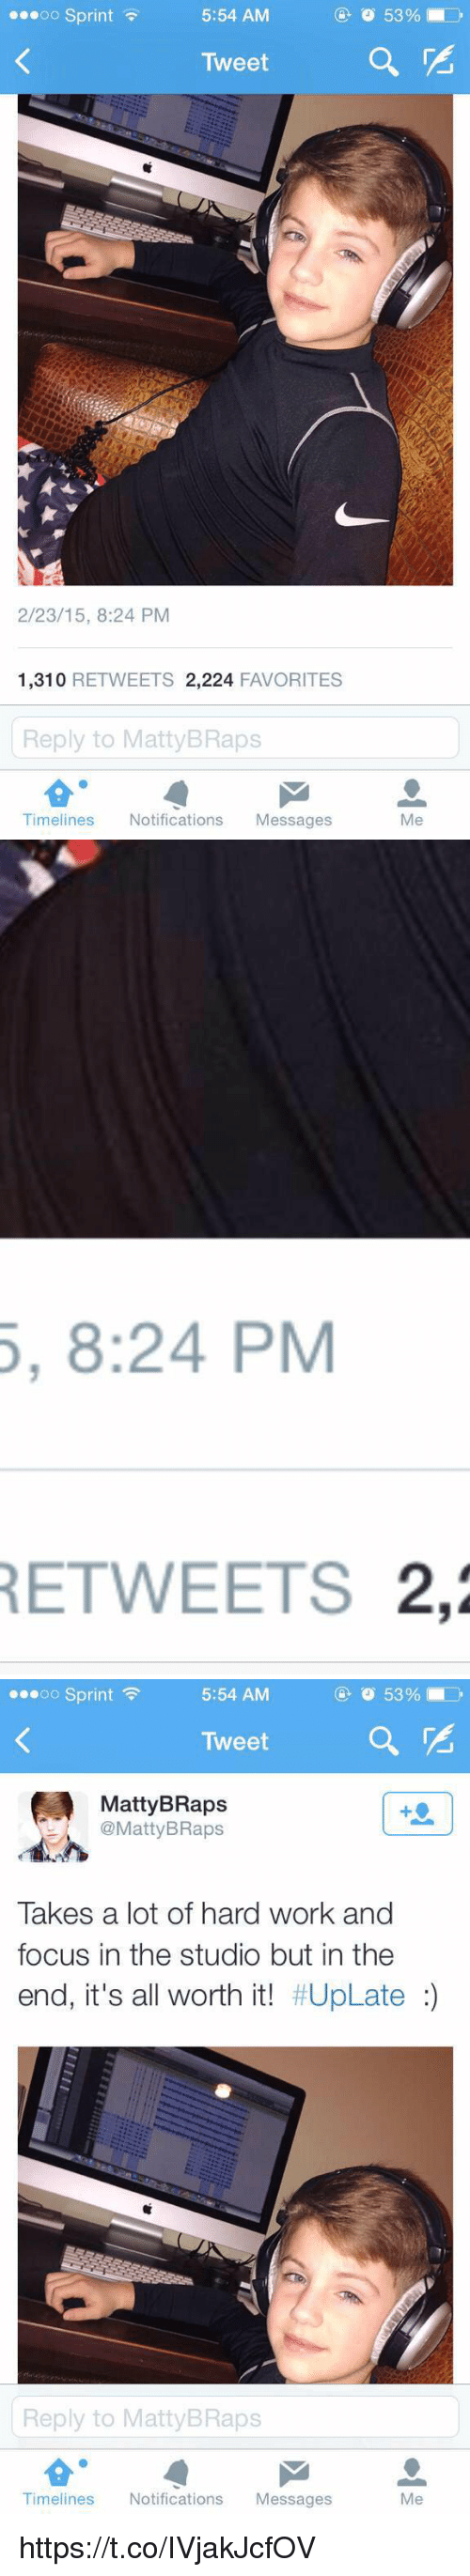 Matti Braps: oo Sprint  5:54 AM  Tweet  2/23/15, 8:24 PM  1,310  RETWEETS 2,224  FAVORITES  Reply to Matty BRaps  Timelines  Notifications  Messages  Me   5, 8:24 PM  RETWEETS 2,2   53%  5:54 AM  oo Sprint  Tweet  Matty BRaps  Matty Raps  Takes a lot of hard work and  focus in the studio but in the  end, it's all worth it! #UpLate  Reply to MattyBRaps  Timelines  Notifications  Messages https://t.co/IVjakJcfOV